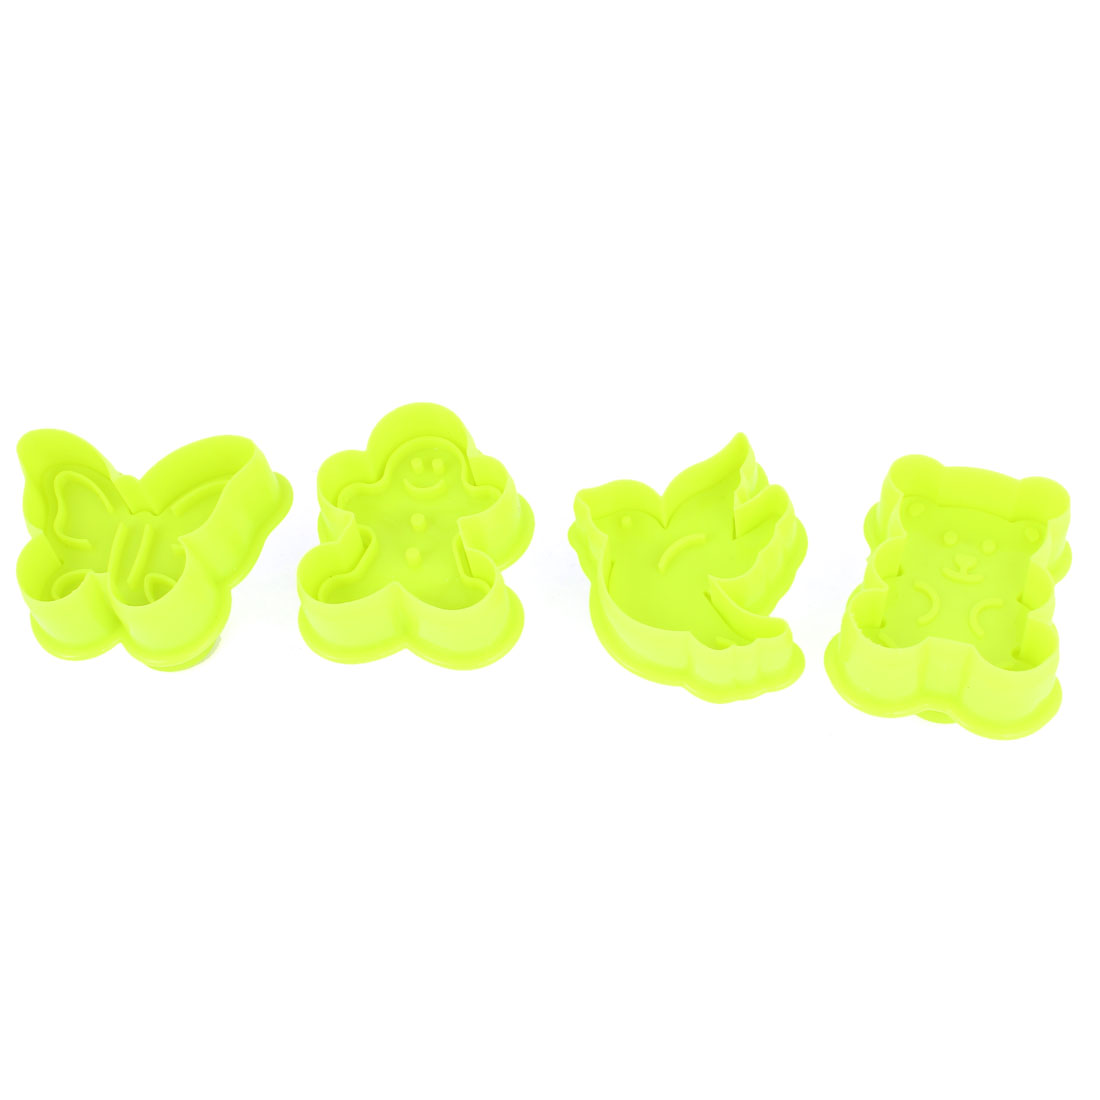 Yellow Green Butterfly Bird Shaped Craft Paste Cake DIY Plunger Cutters 4 Pcs